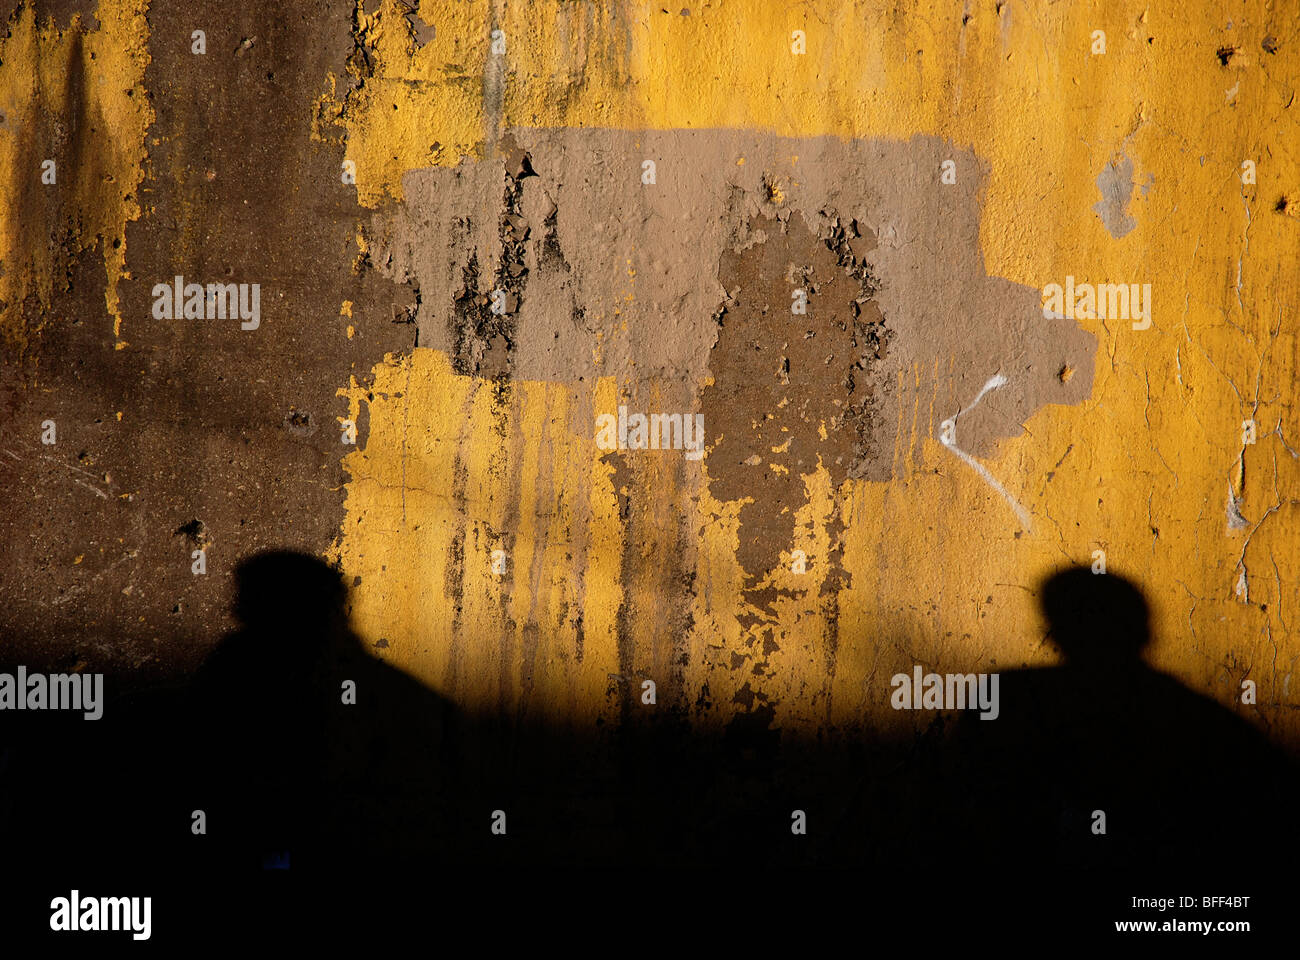 Yellow wall with silhouettes of two people - Stock Image